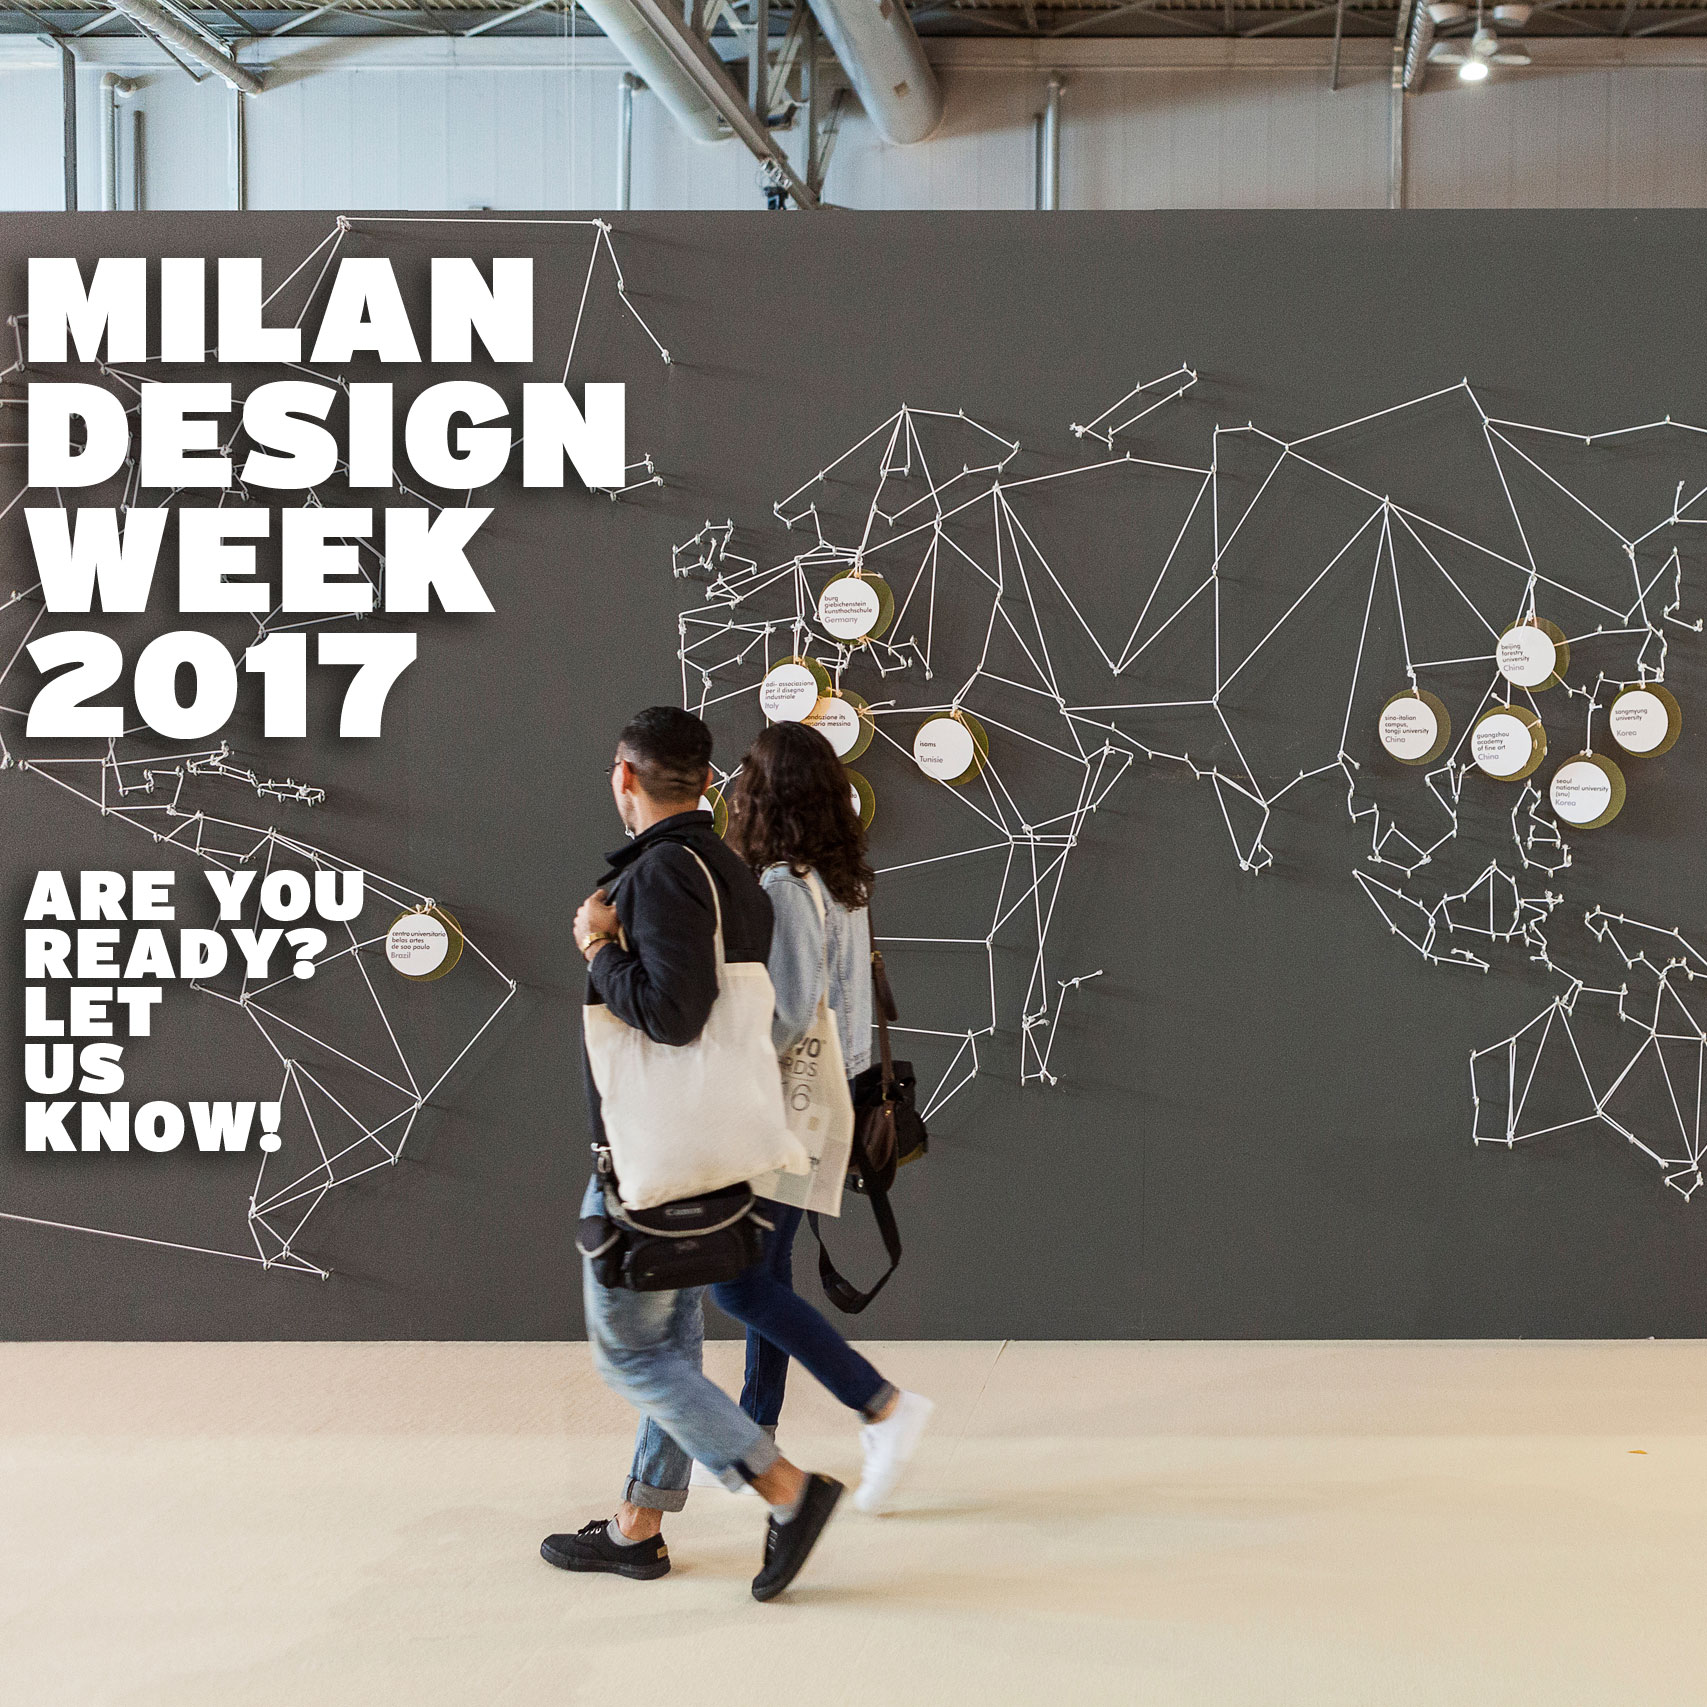 10 Highlights From Milan Design Week